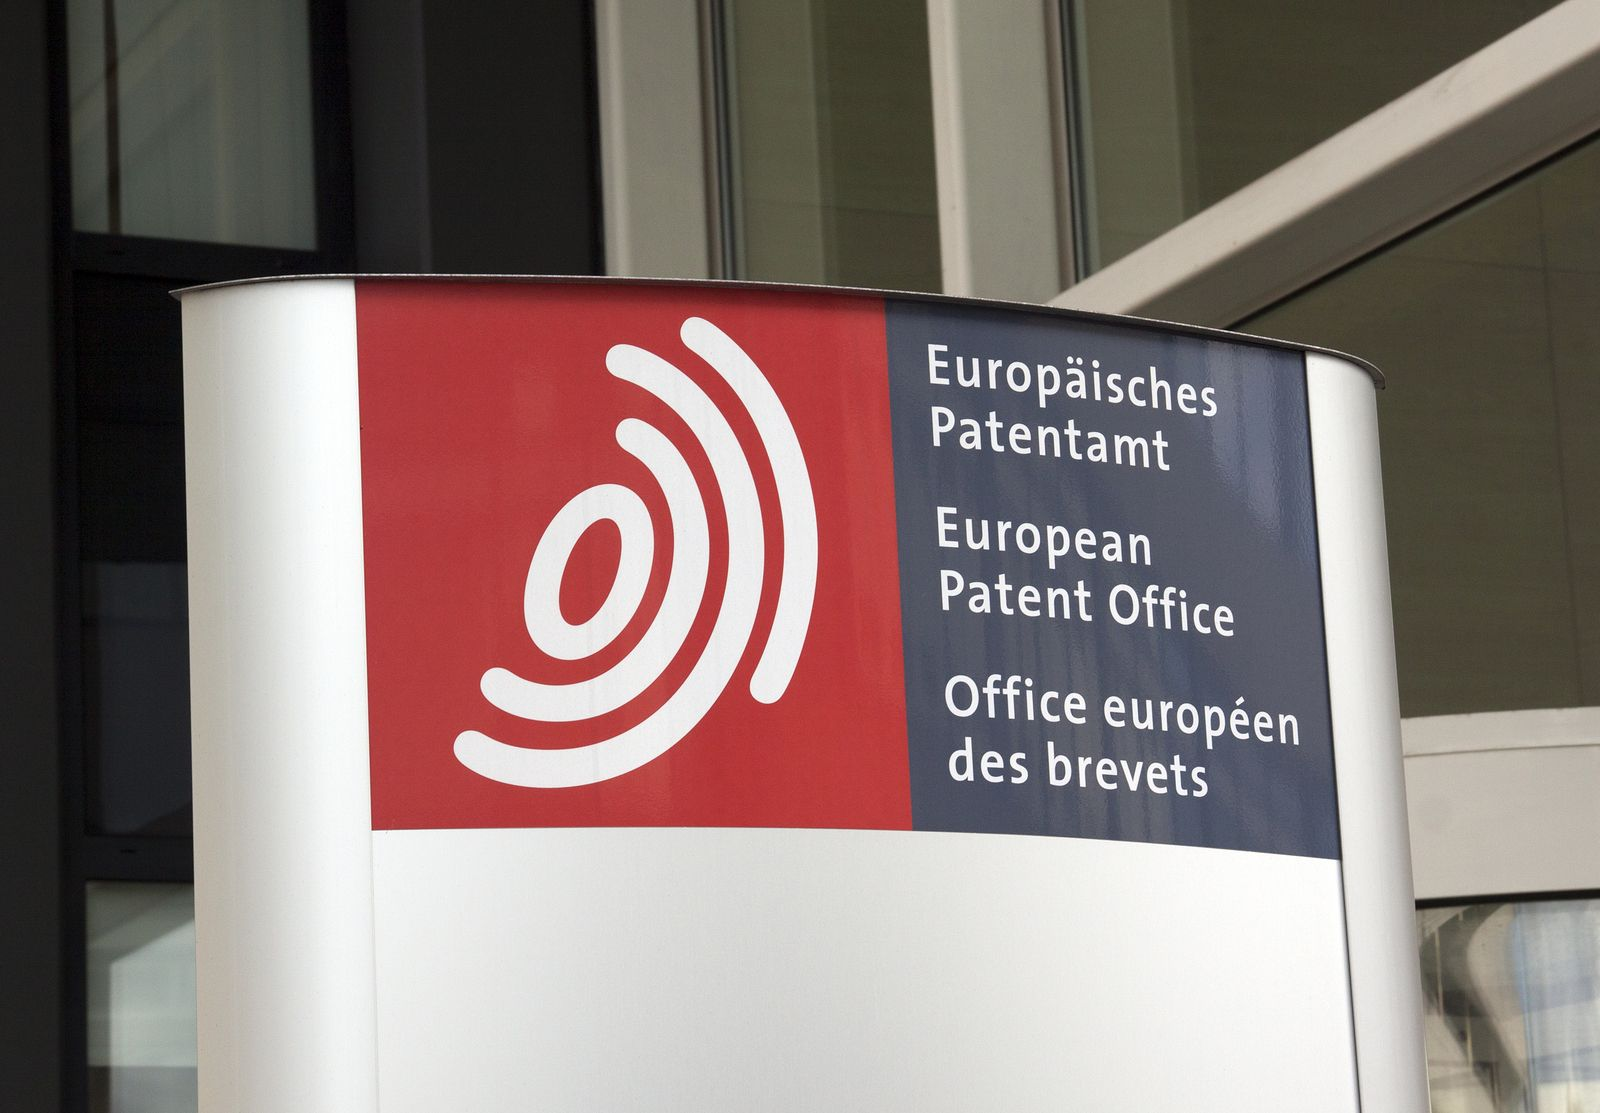 Enhancing the Visibility of Intellectual Property: EPO and LESI sign MoU on Bilateral Cooperation